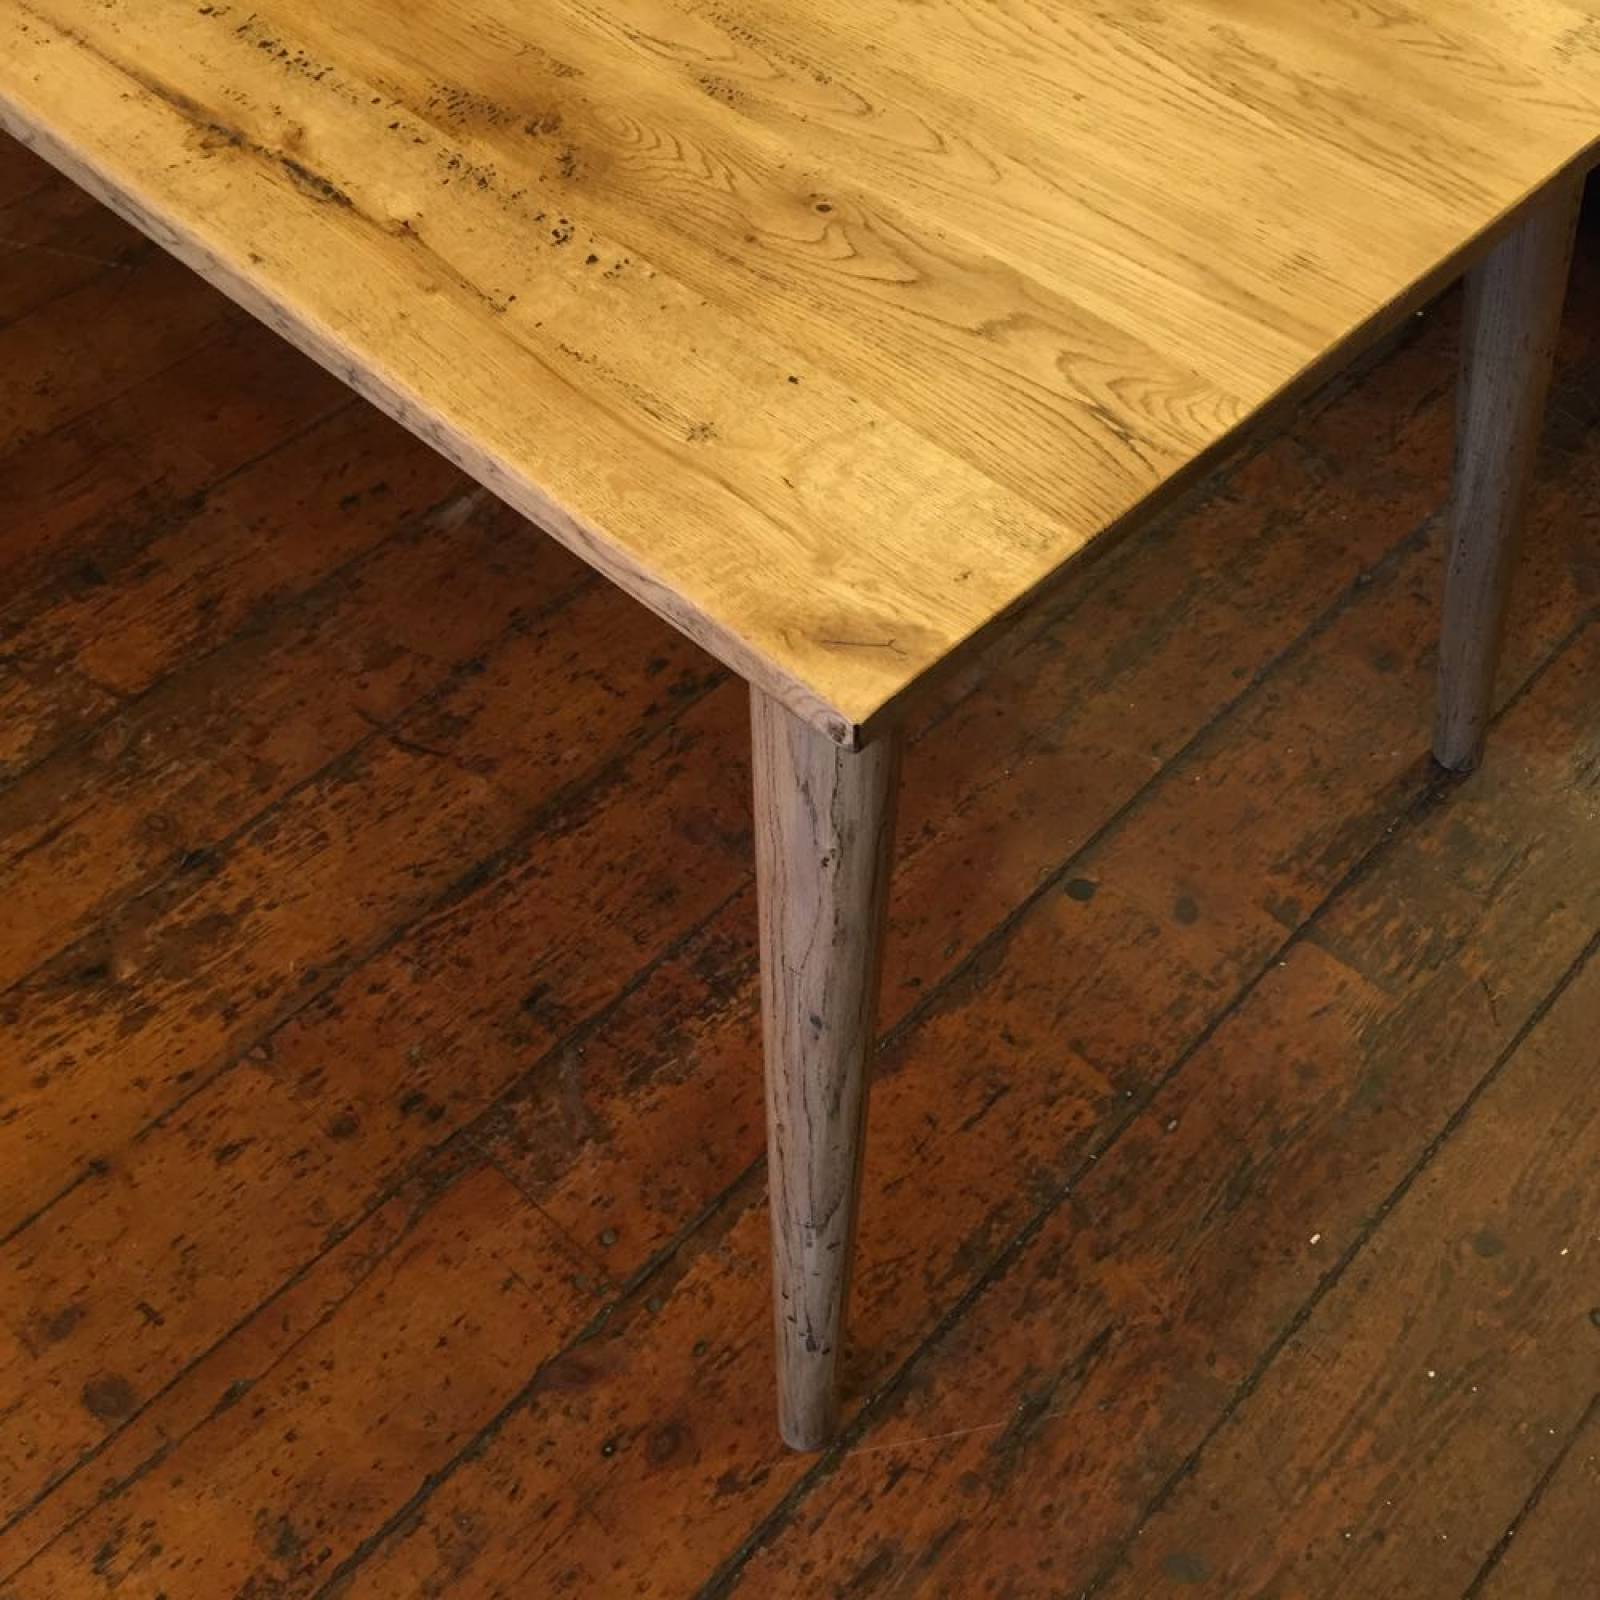 Gotland 1.5m Rectangular Oak Retro Dining Table Splayed Legs thumbnails